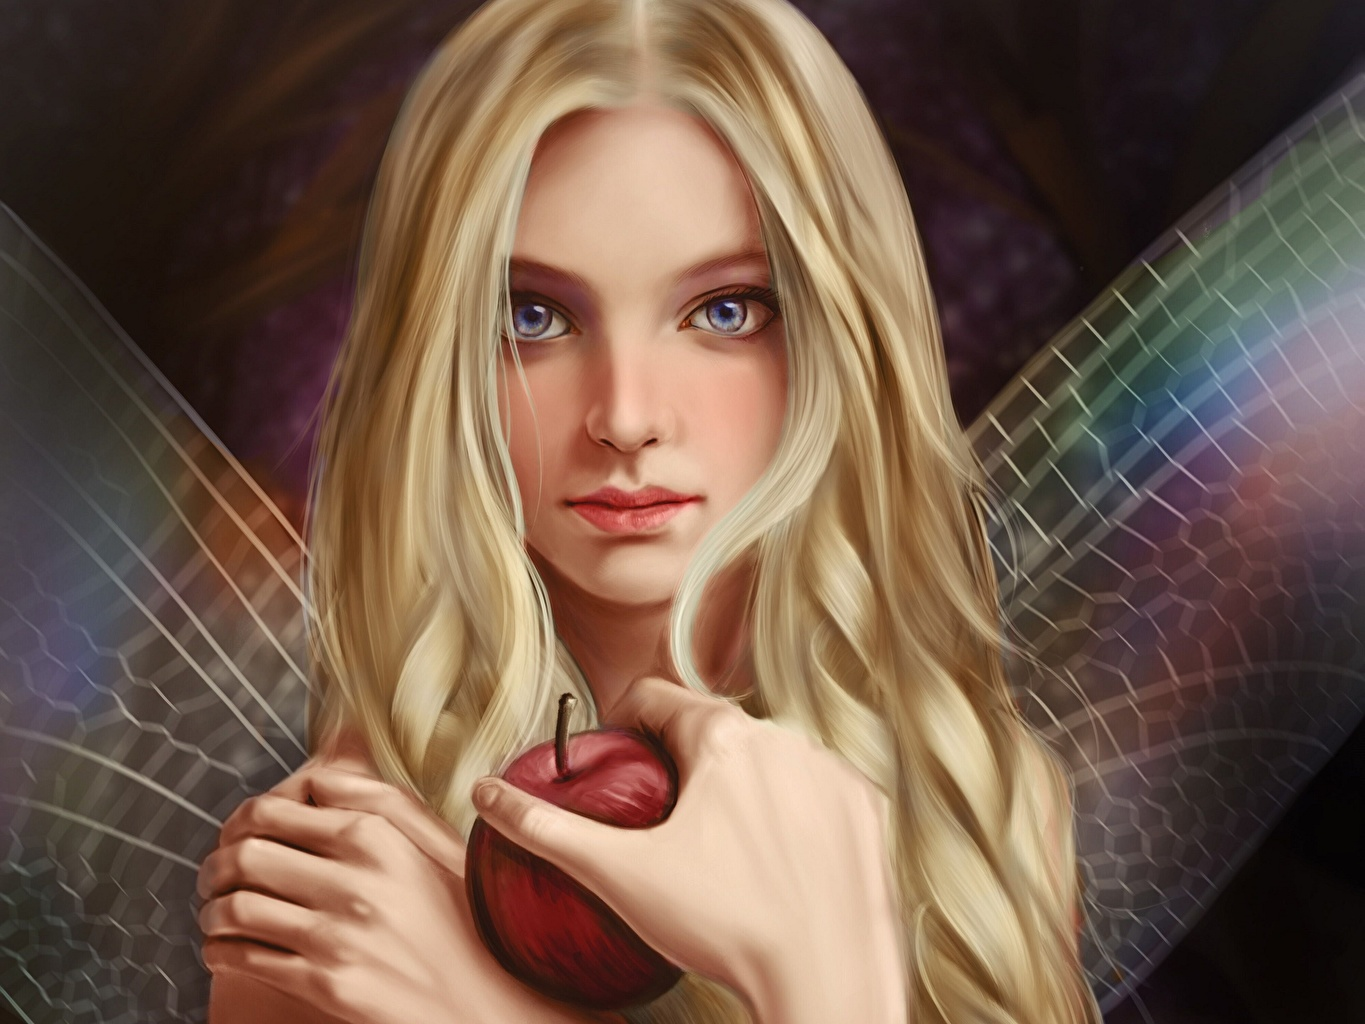 Wallpaper Fairies Blonde girl Vincent Chu Girls Fantasy Apples Hands Glance Fairy female young woman Staring